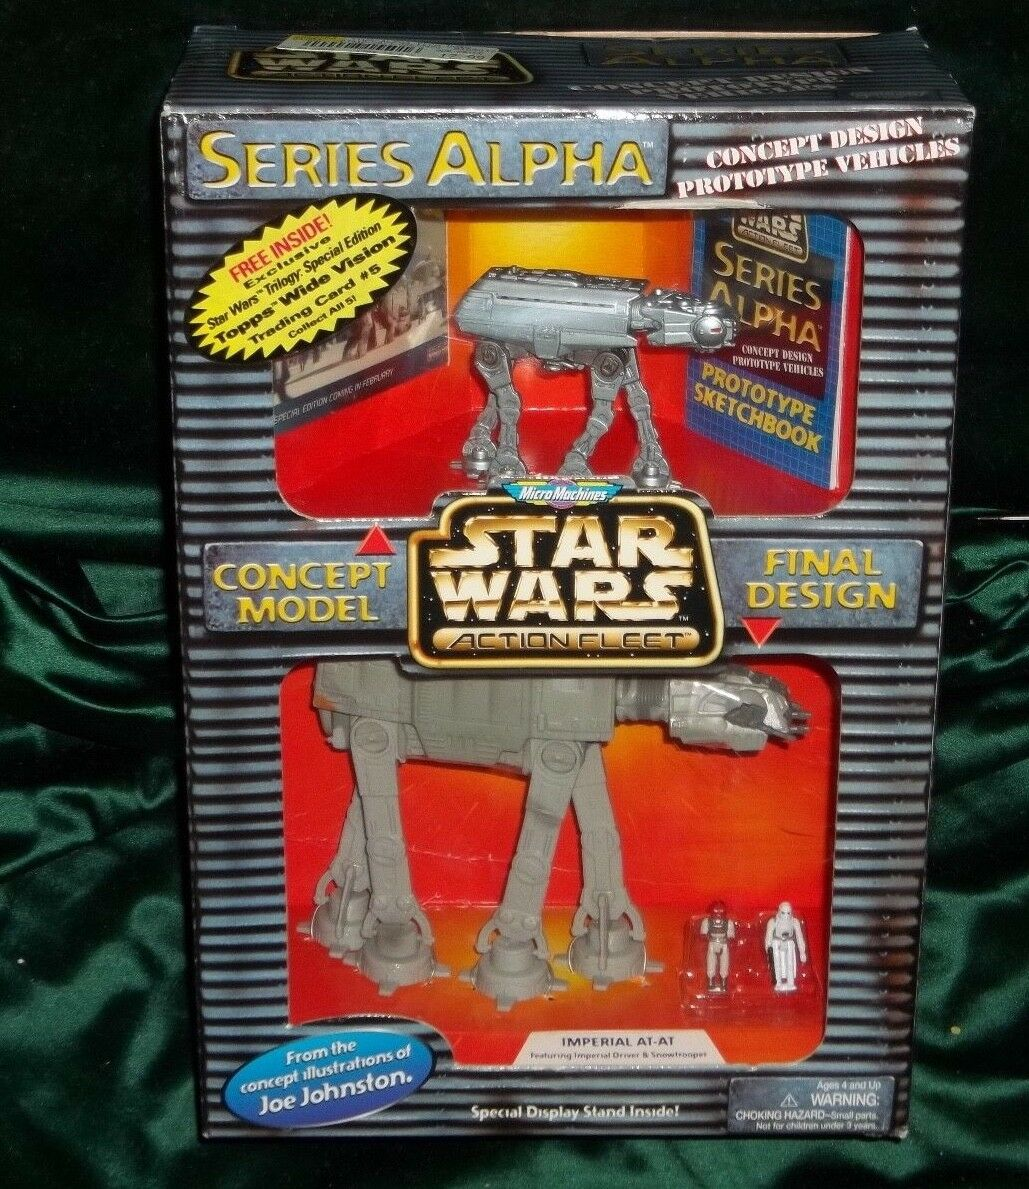 STAR WARS ACTION FLEET SERIES ALPHA IMPERIAL AT-AT SNOW WALKER W 2 MINI FIGURES